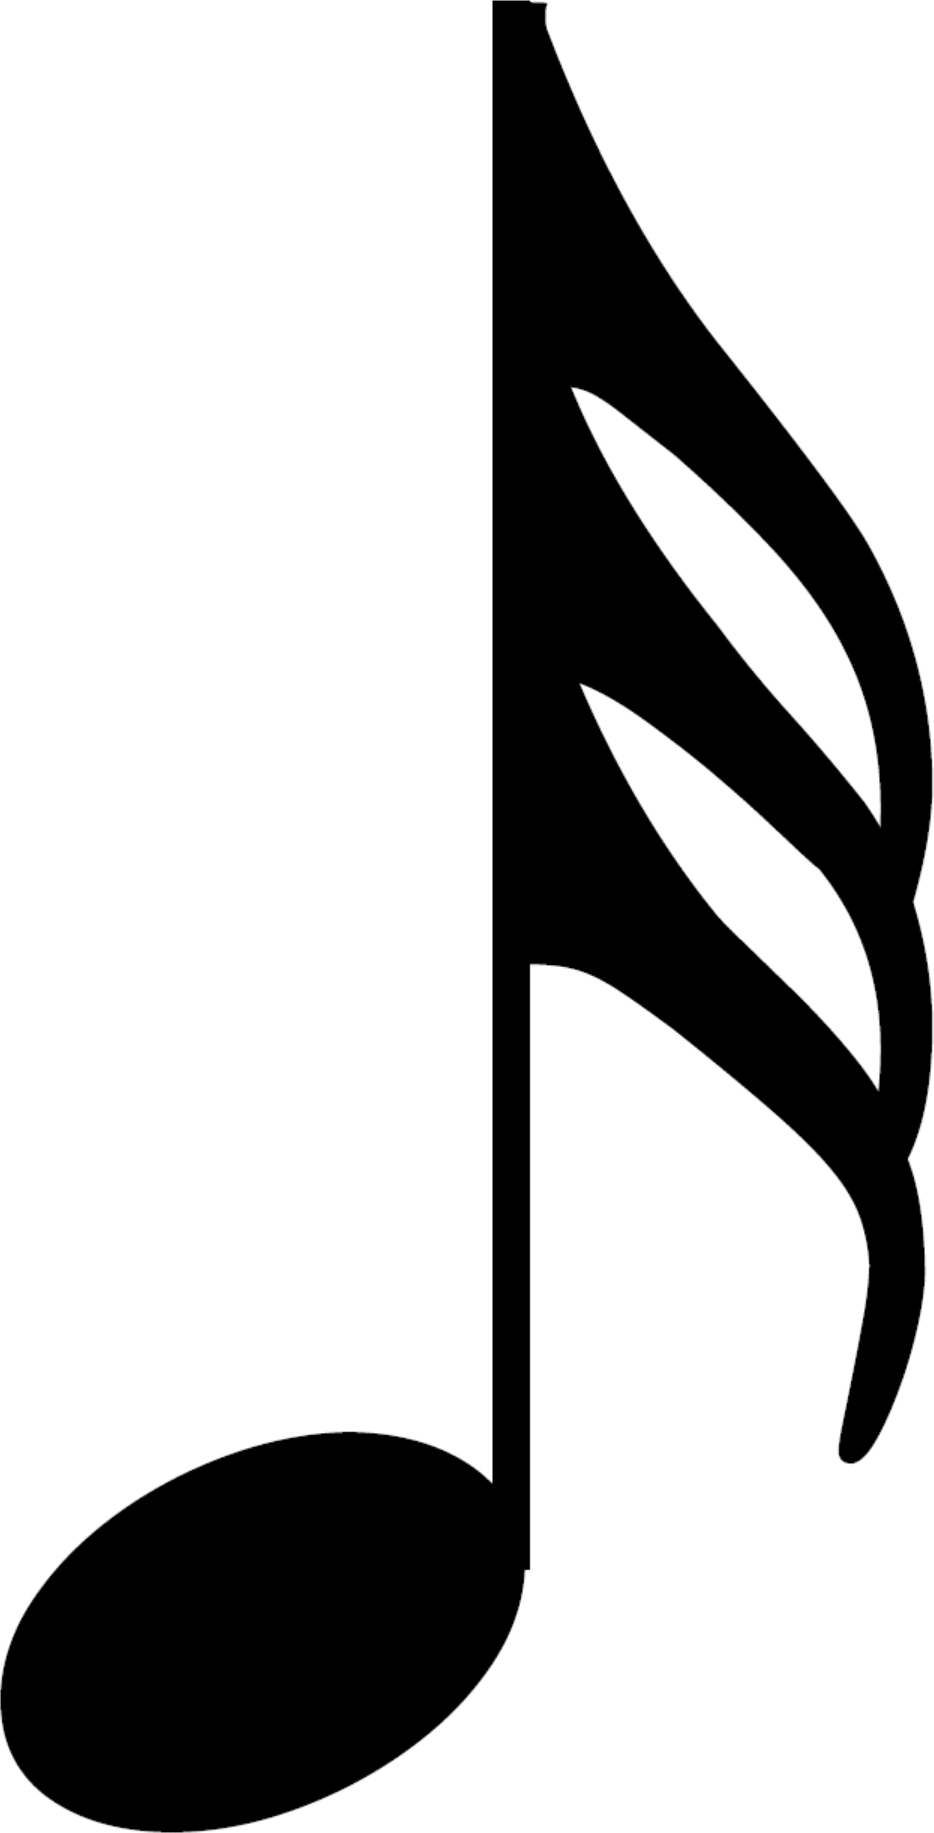 An HD thirty second note, also called a demisemiquaver; a musical symbol and musical note value.